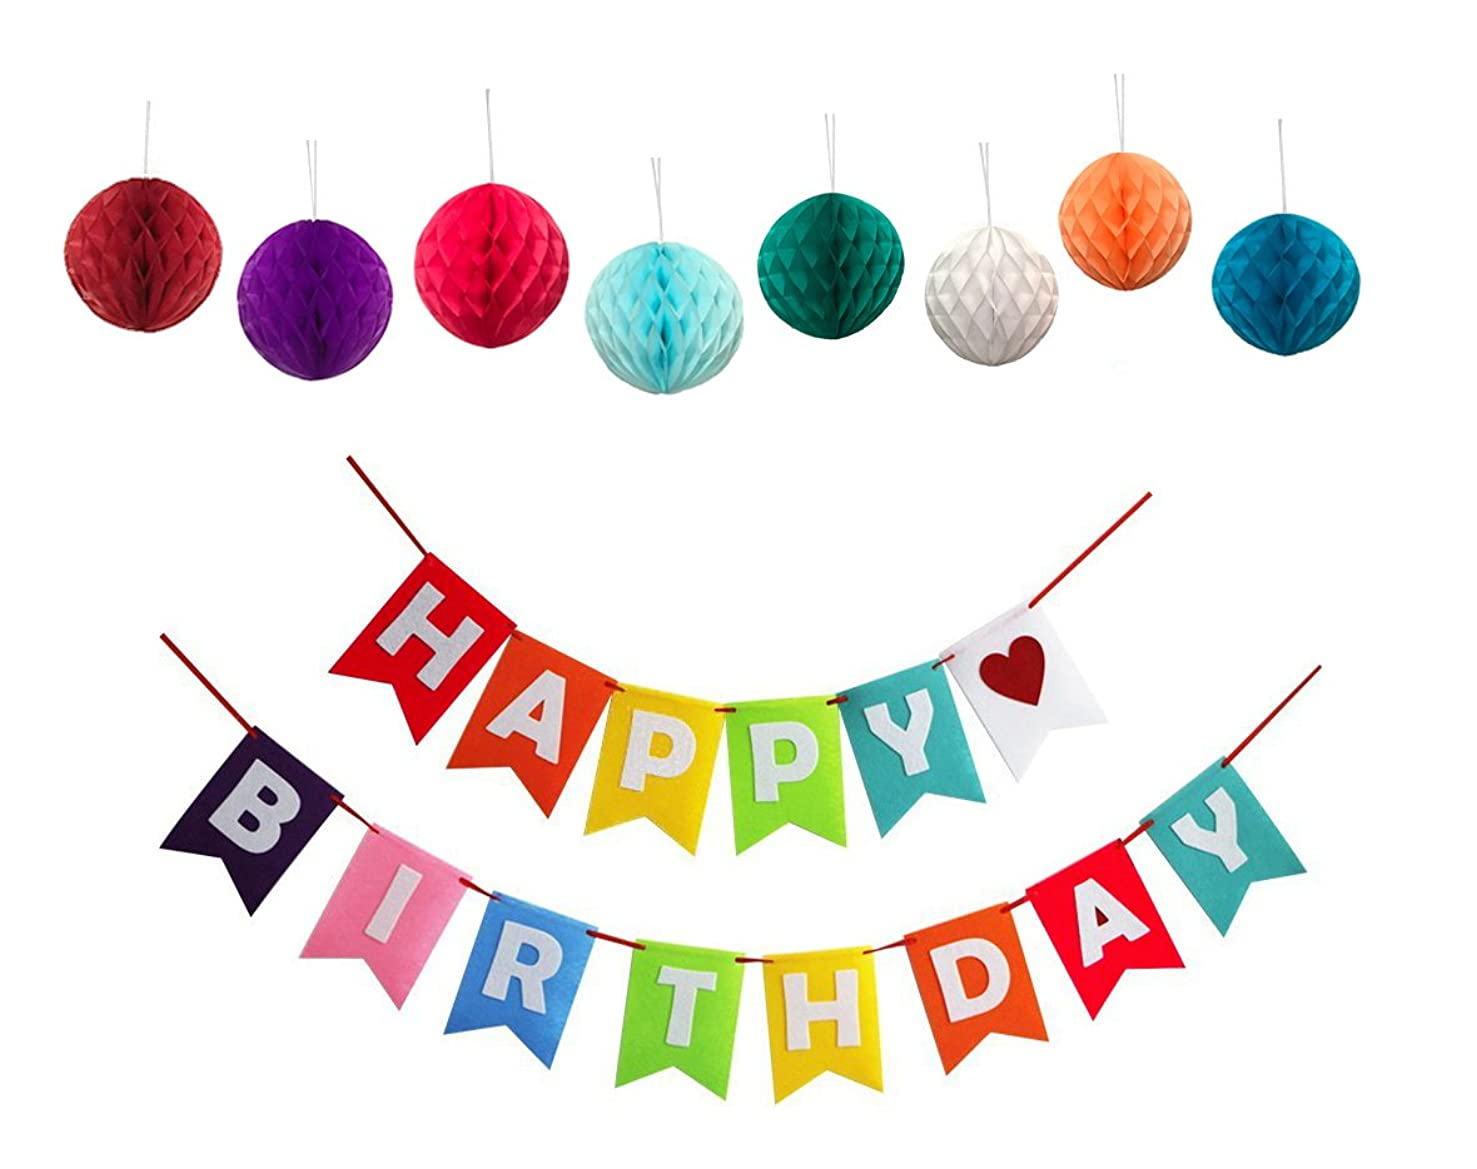 It's Party Time: Happy Birthday Banner - Perfect Birthday Decorations for All Ages with Set of 8 Tissue Paper Honeycomb Balls